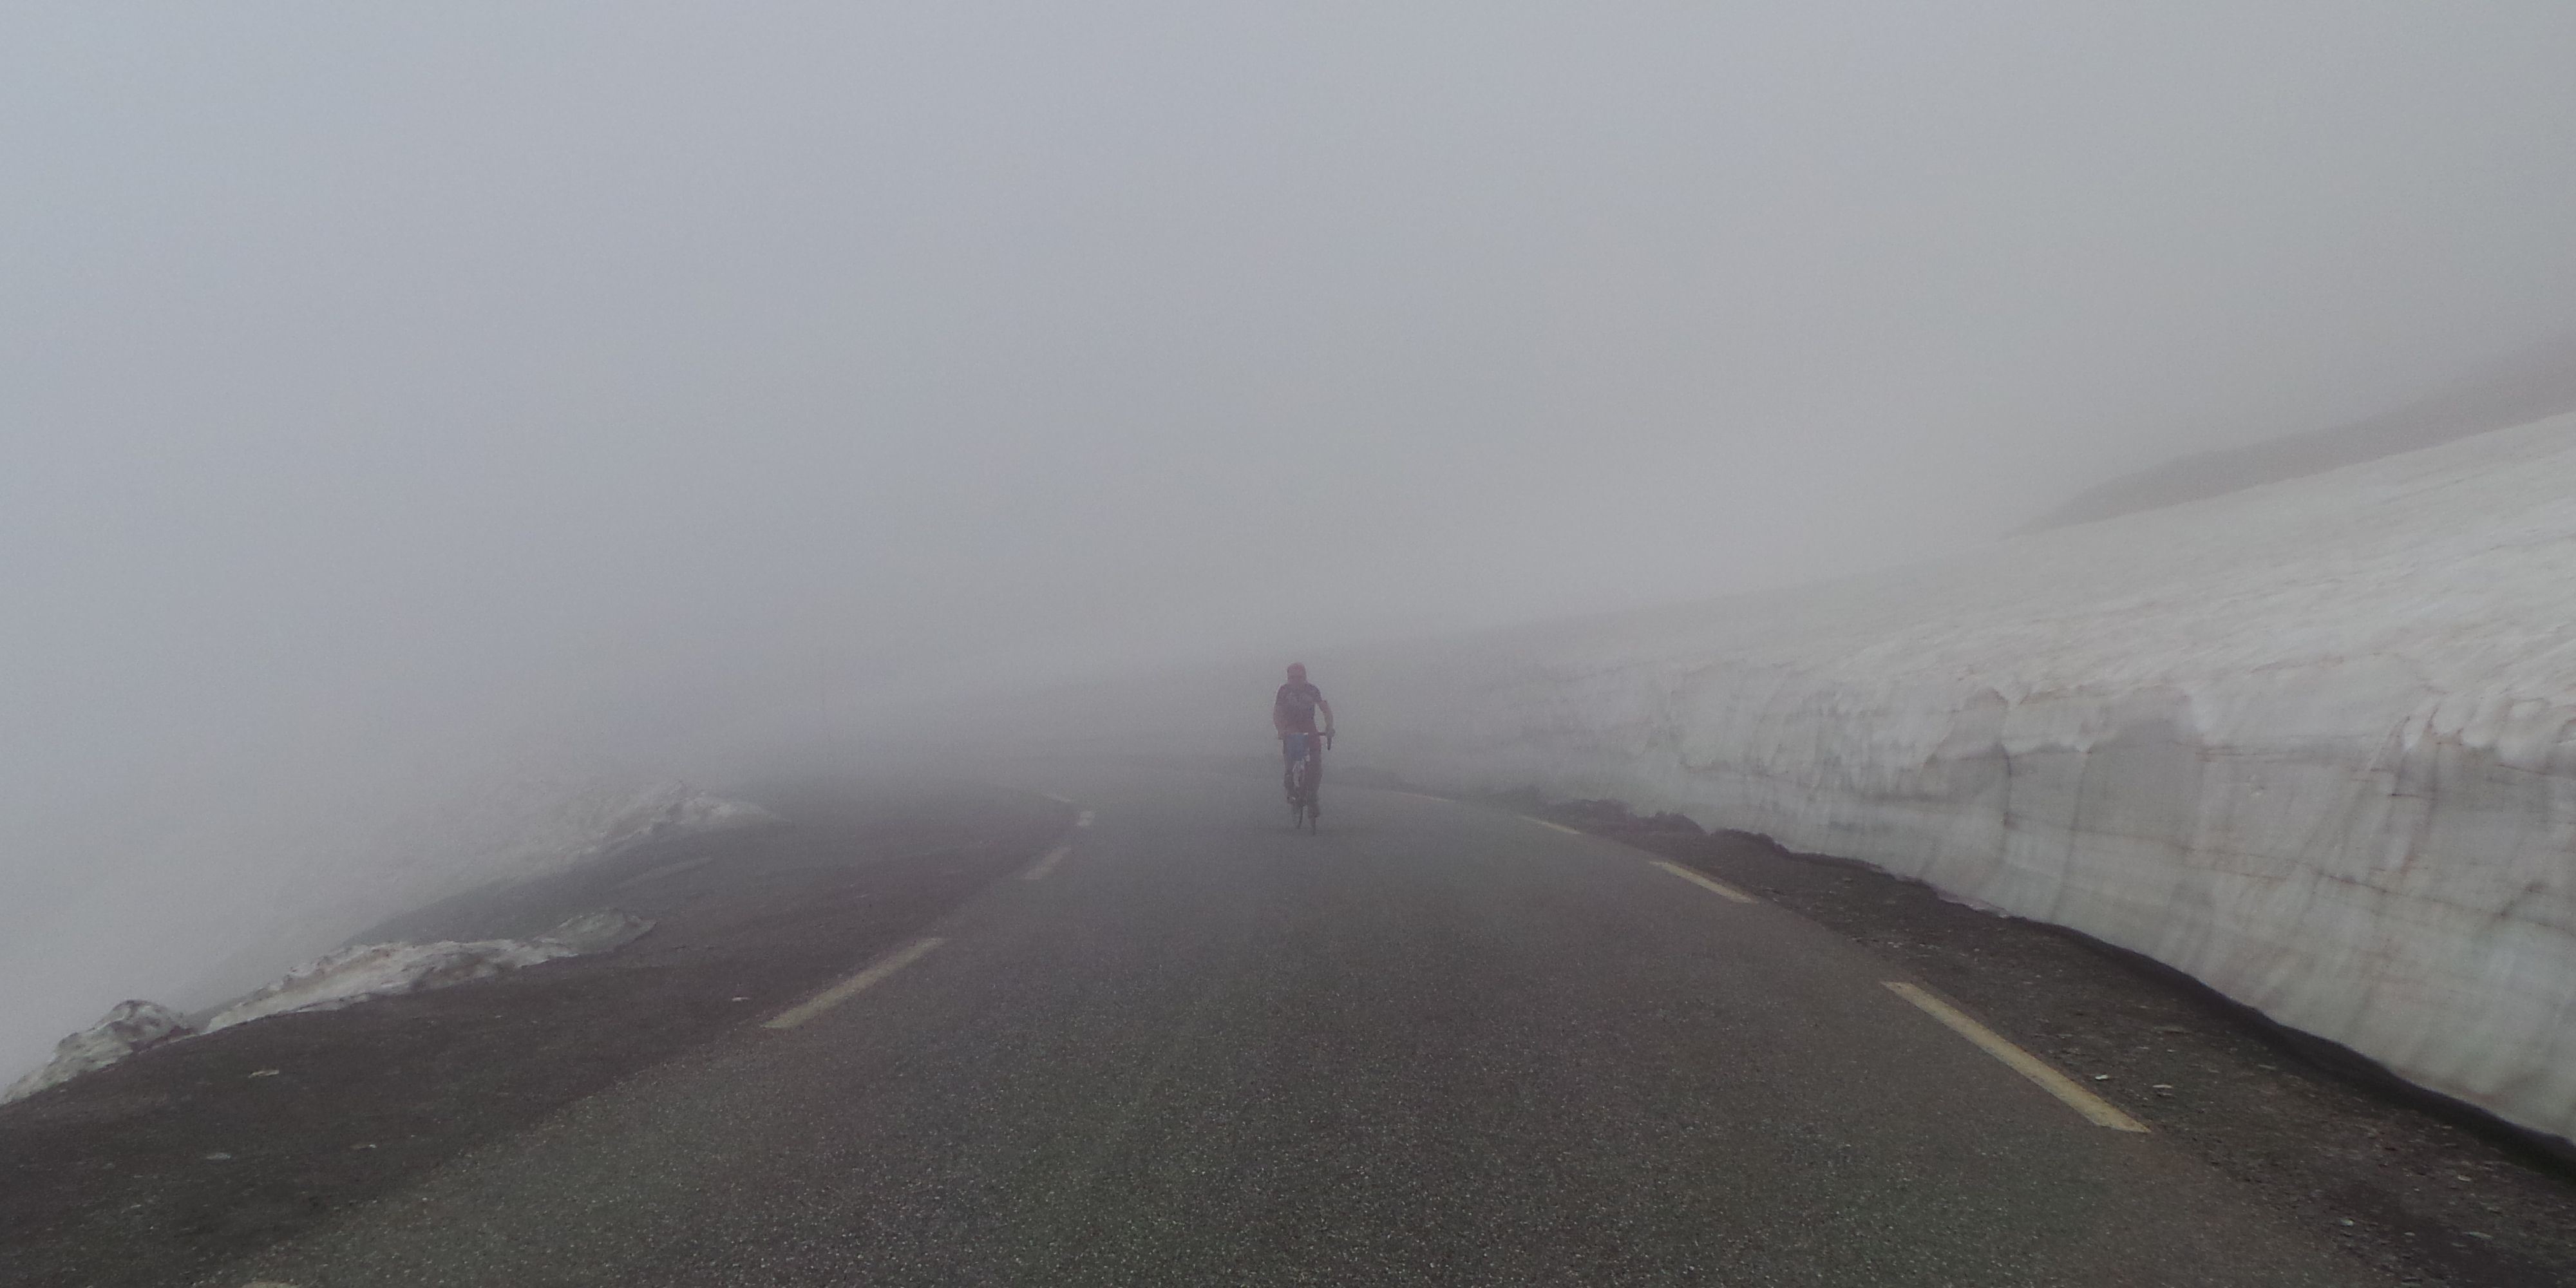 Col d'Agnel - no view from the summit, I guess...